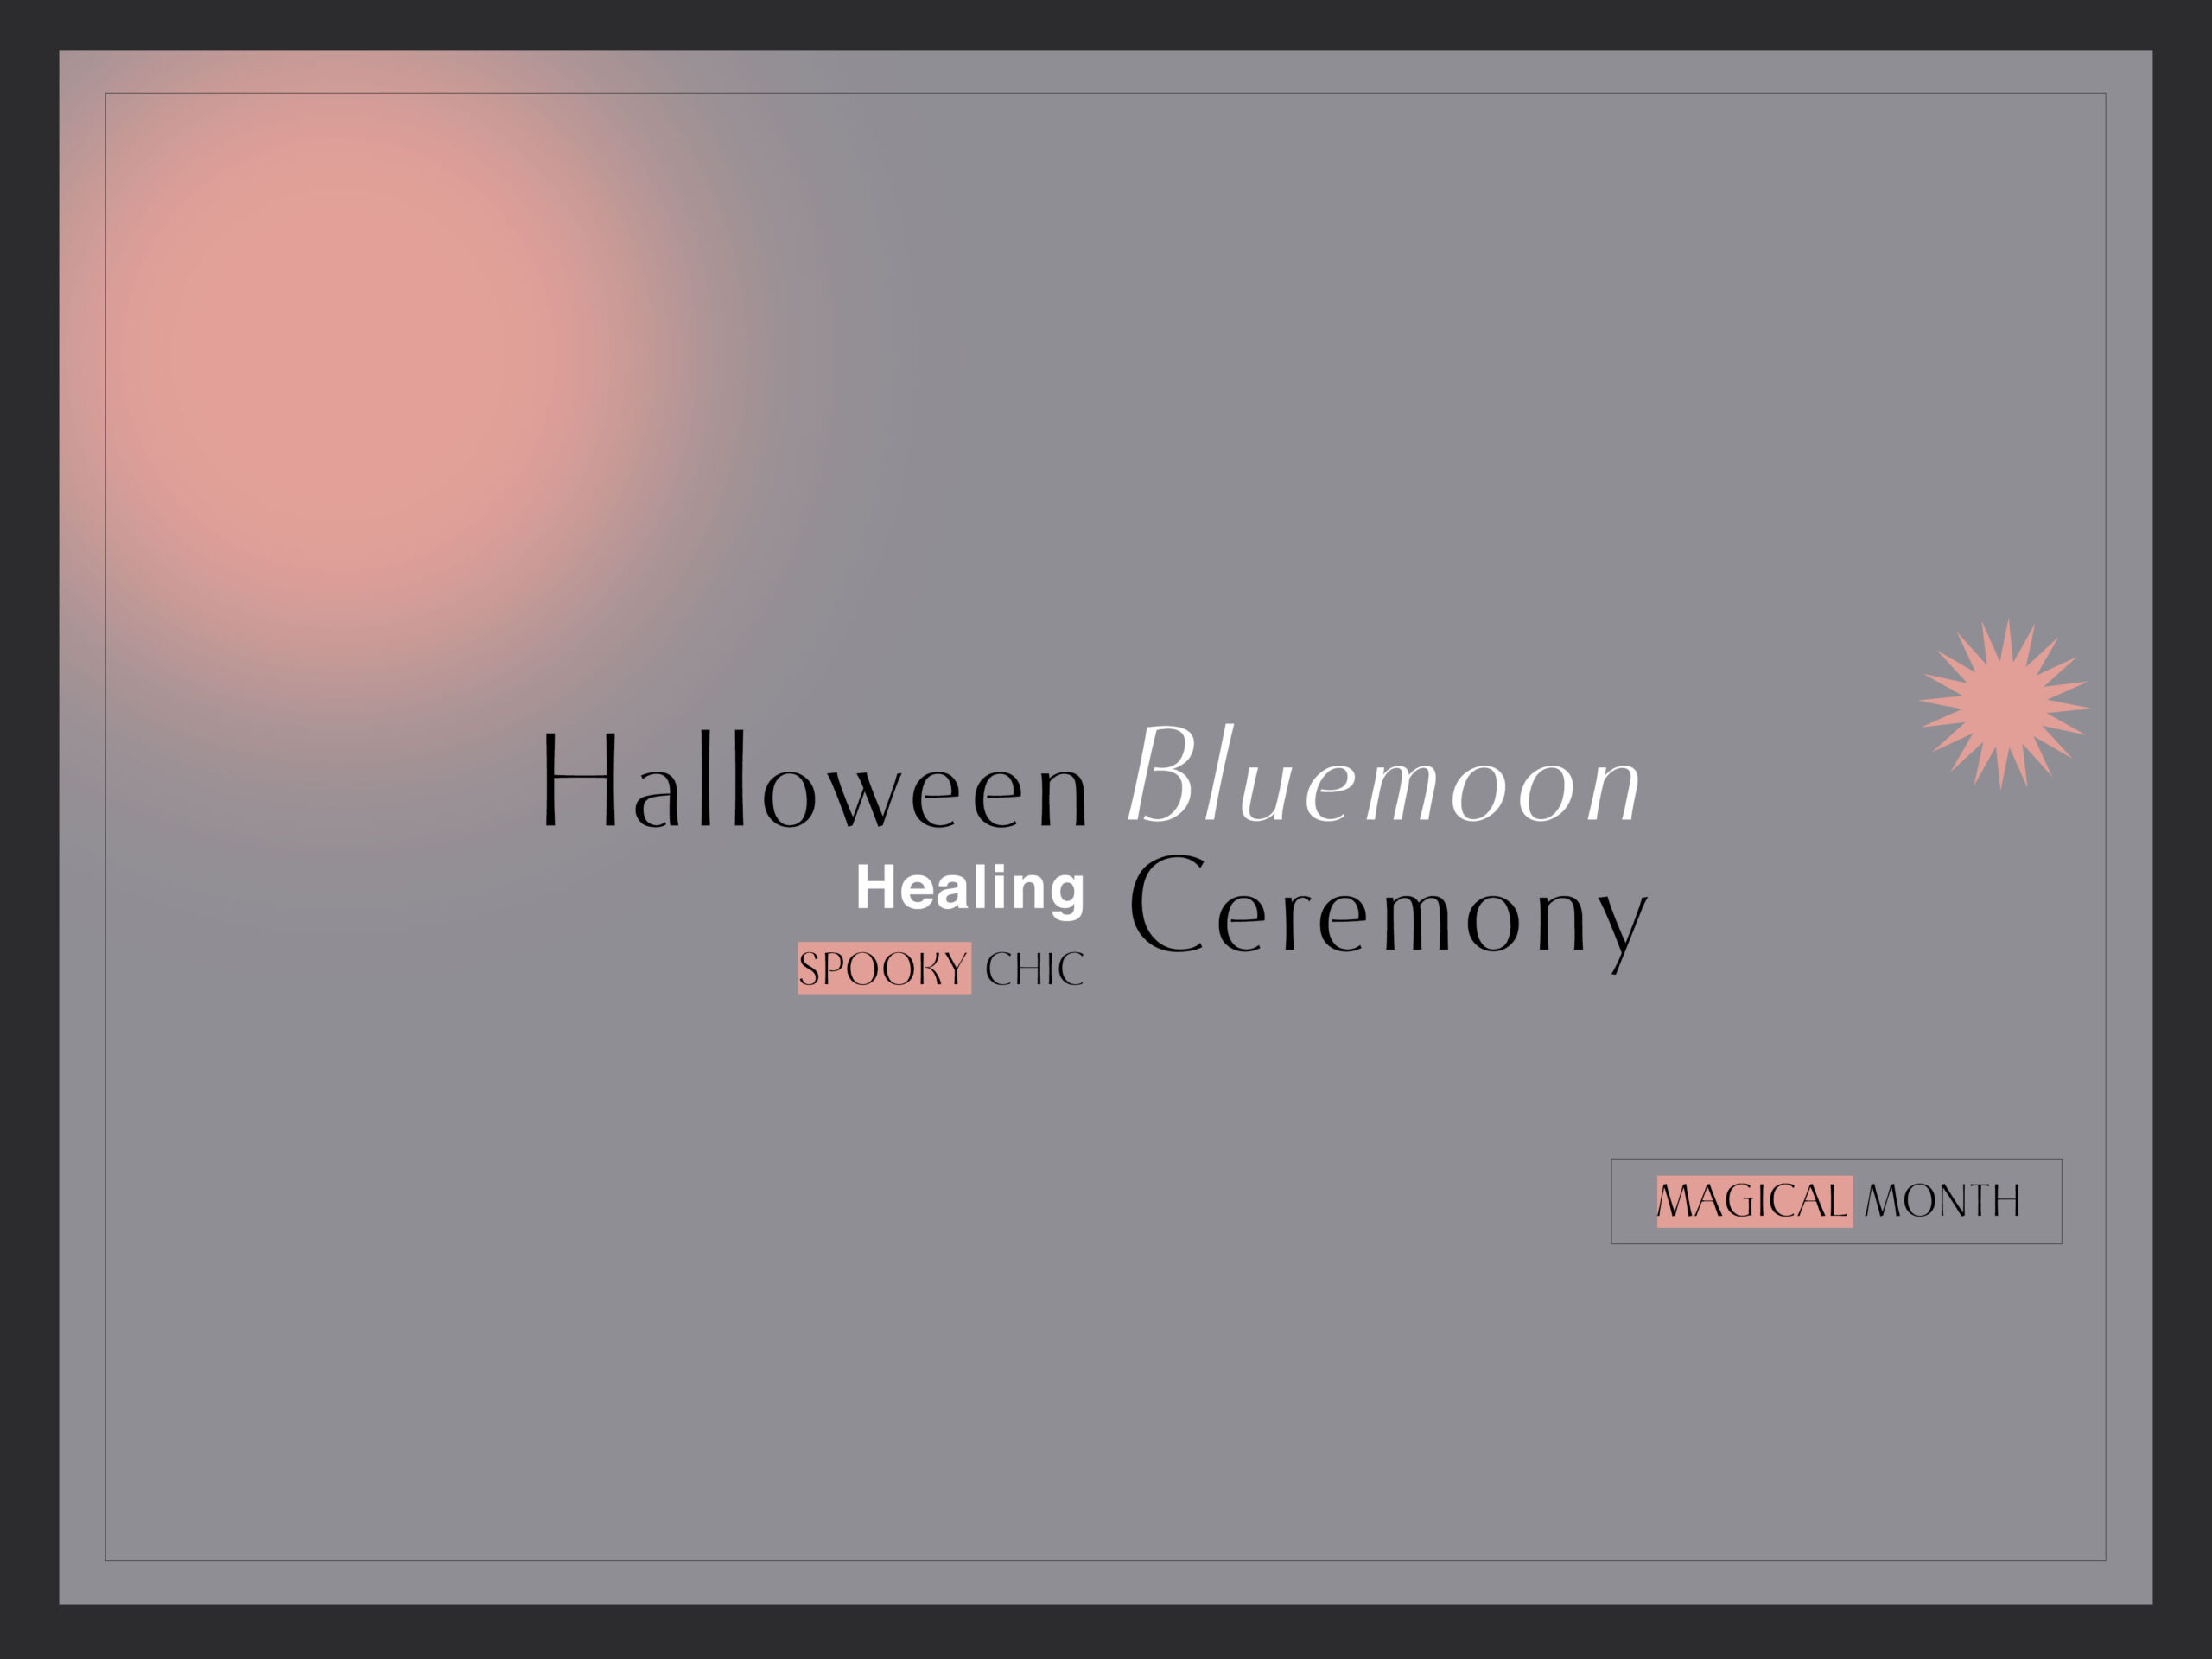 Halloween Bluemoon Ceremony